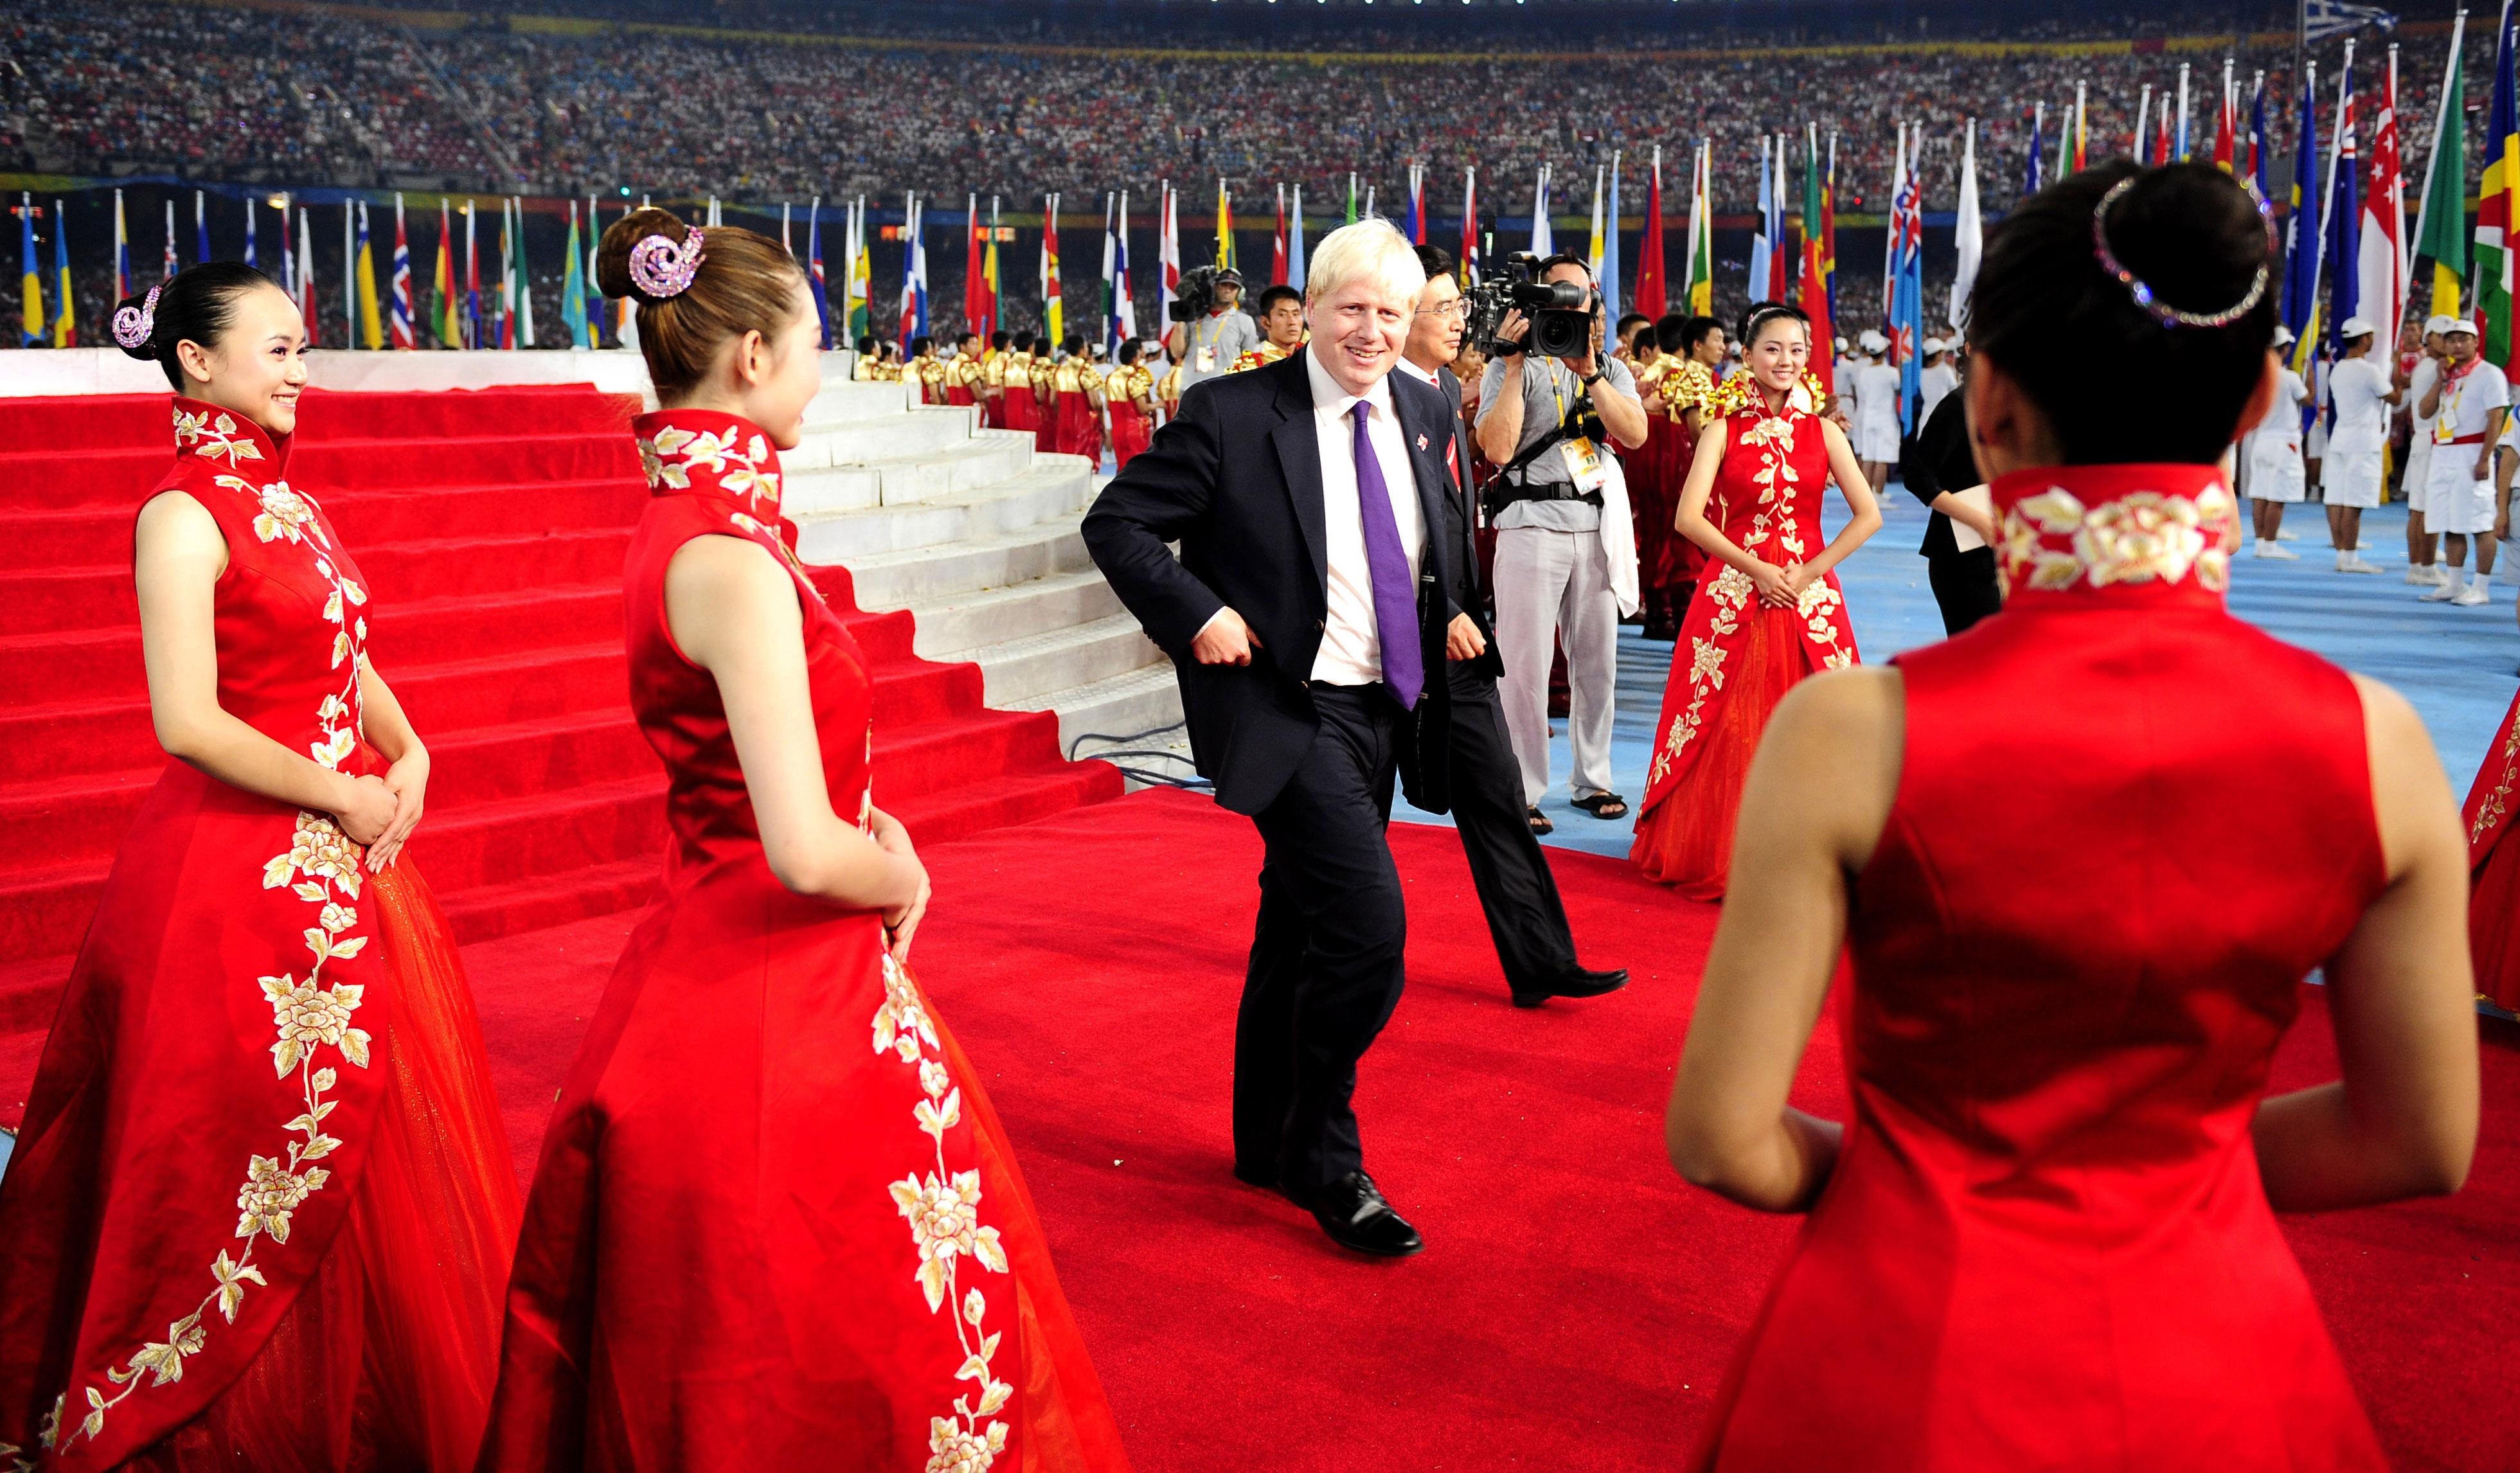 Mayor of London Boris Johnson during the Closing Ceremony at the National Stadium during the 2008 Beijing Olympic Games, China.